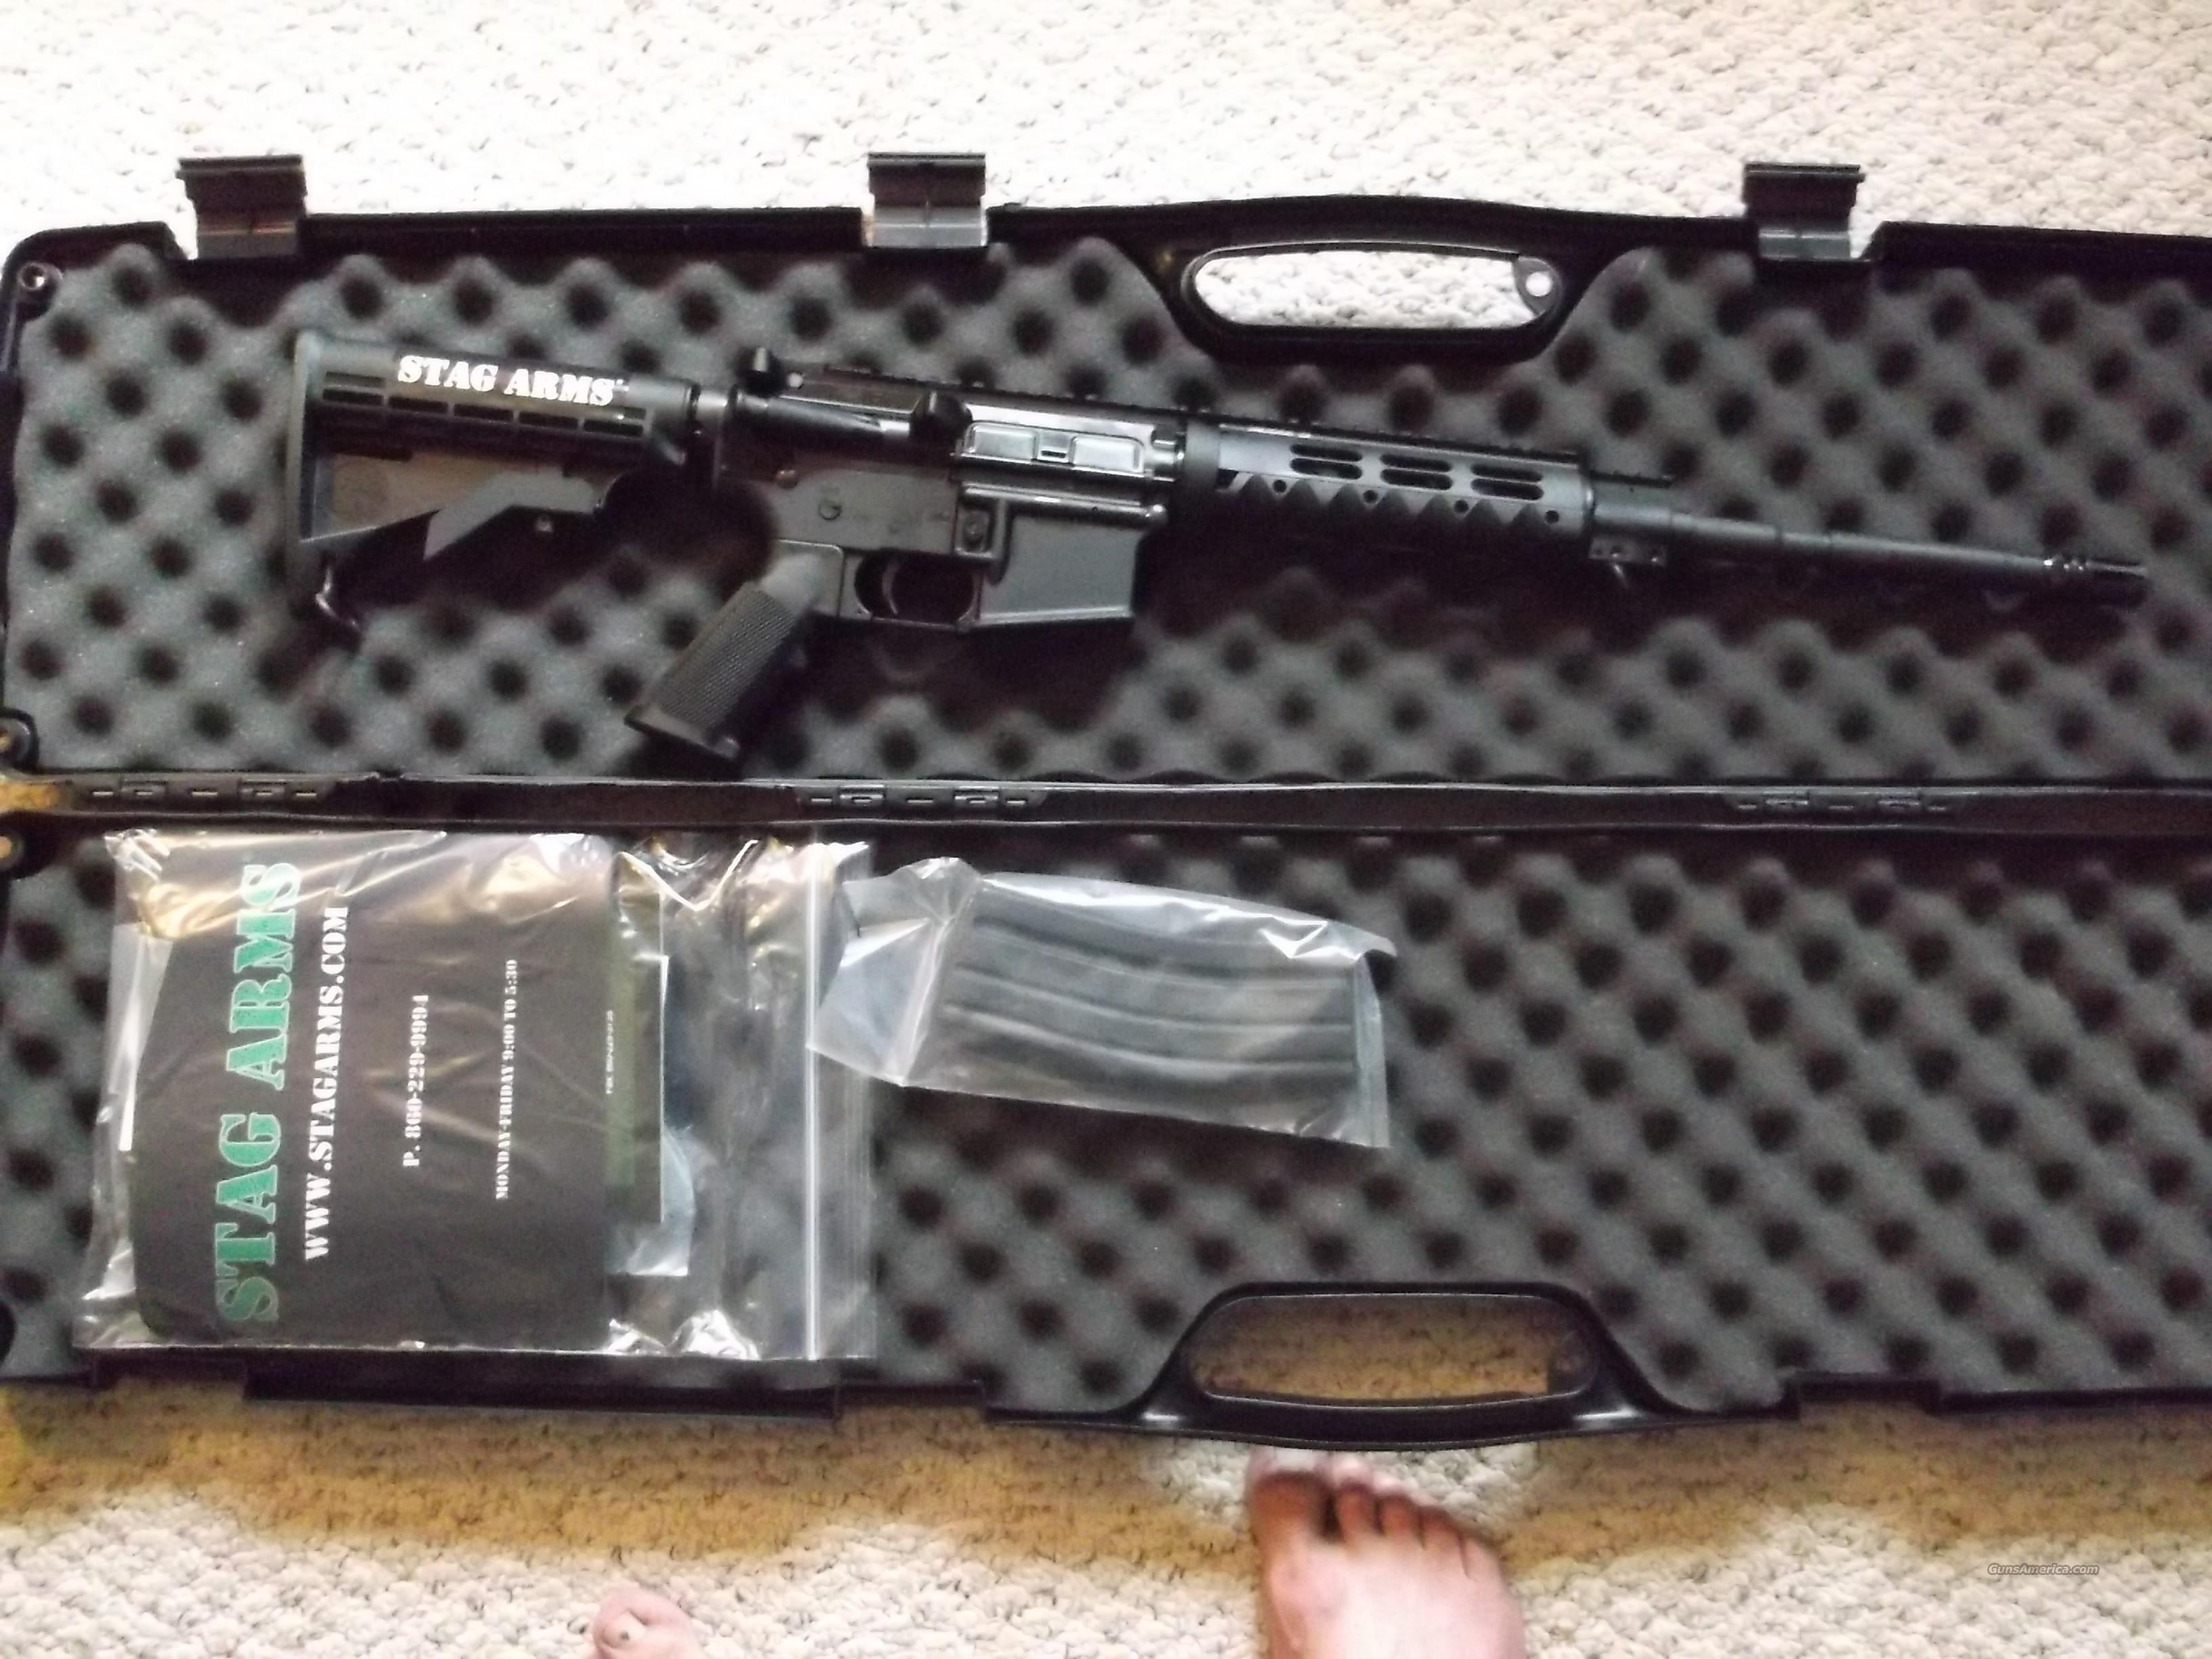 STAG M3+P PACKAG!!!!! FREE S/H  Guns > Rifles > Stag Arms > Complete Rifles